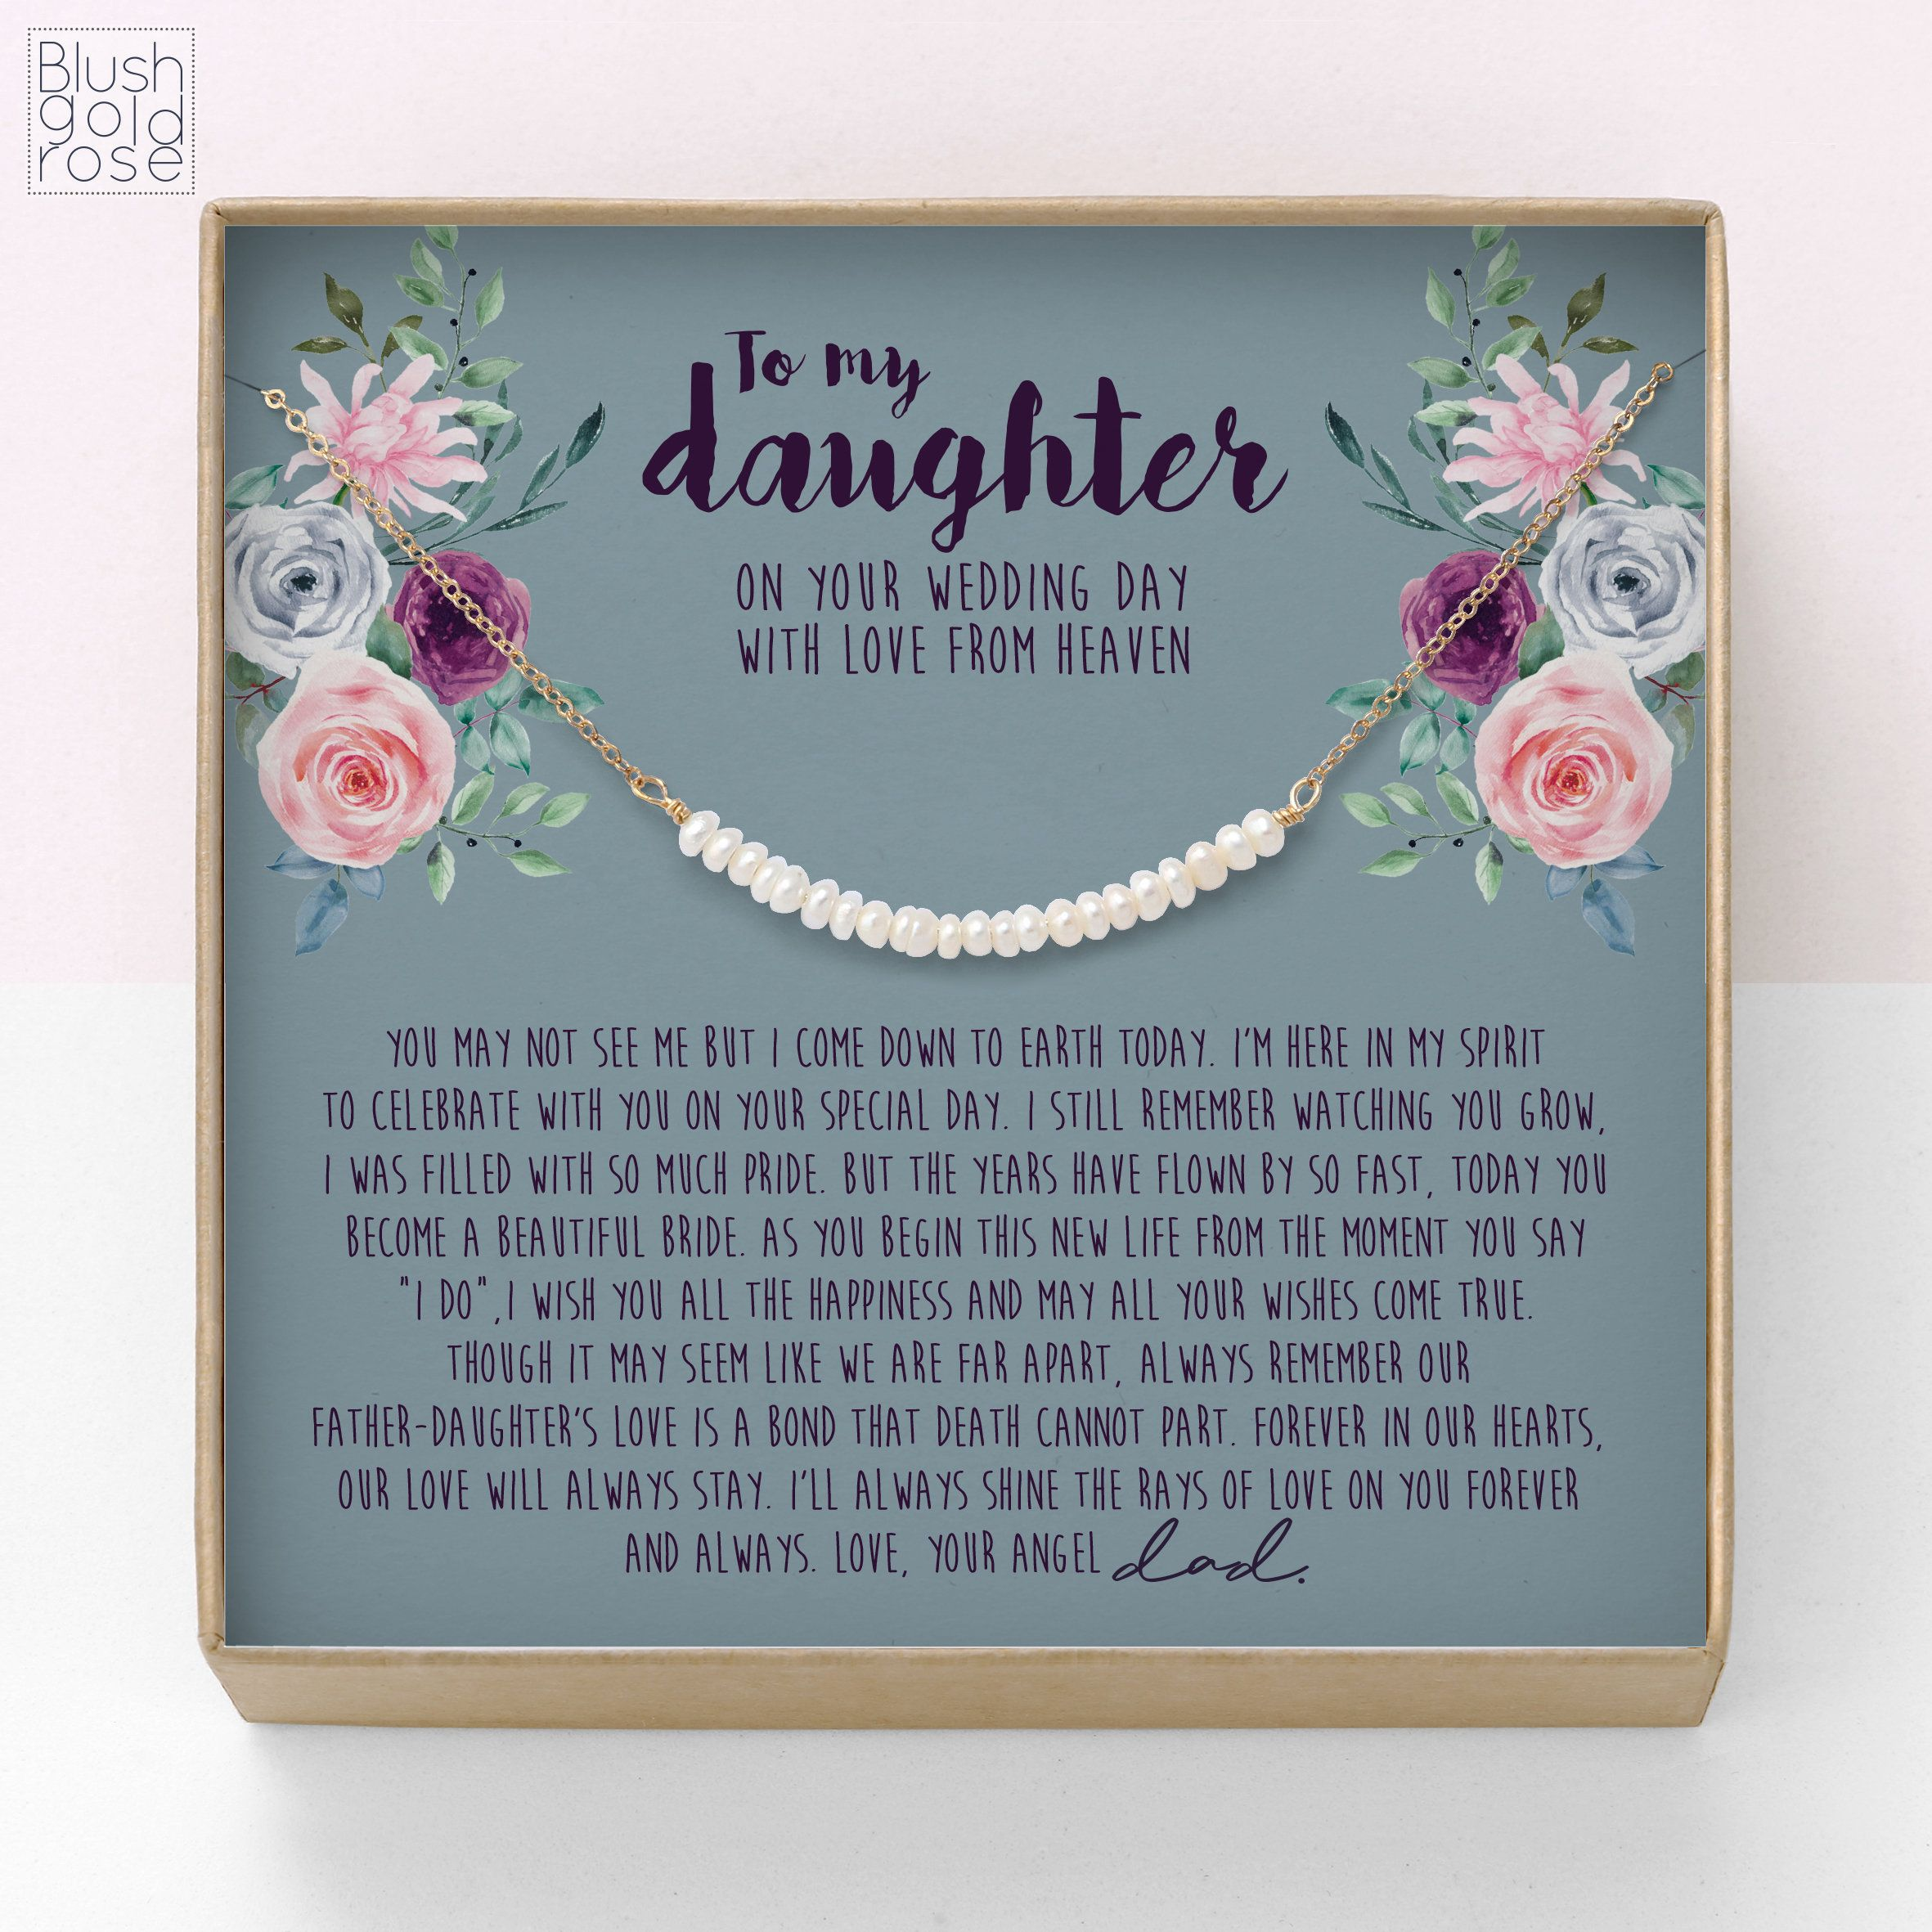 Bride gift from angel dad pearl bar necklace bride